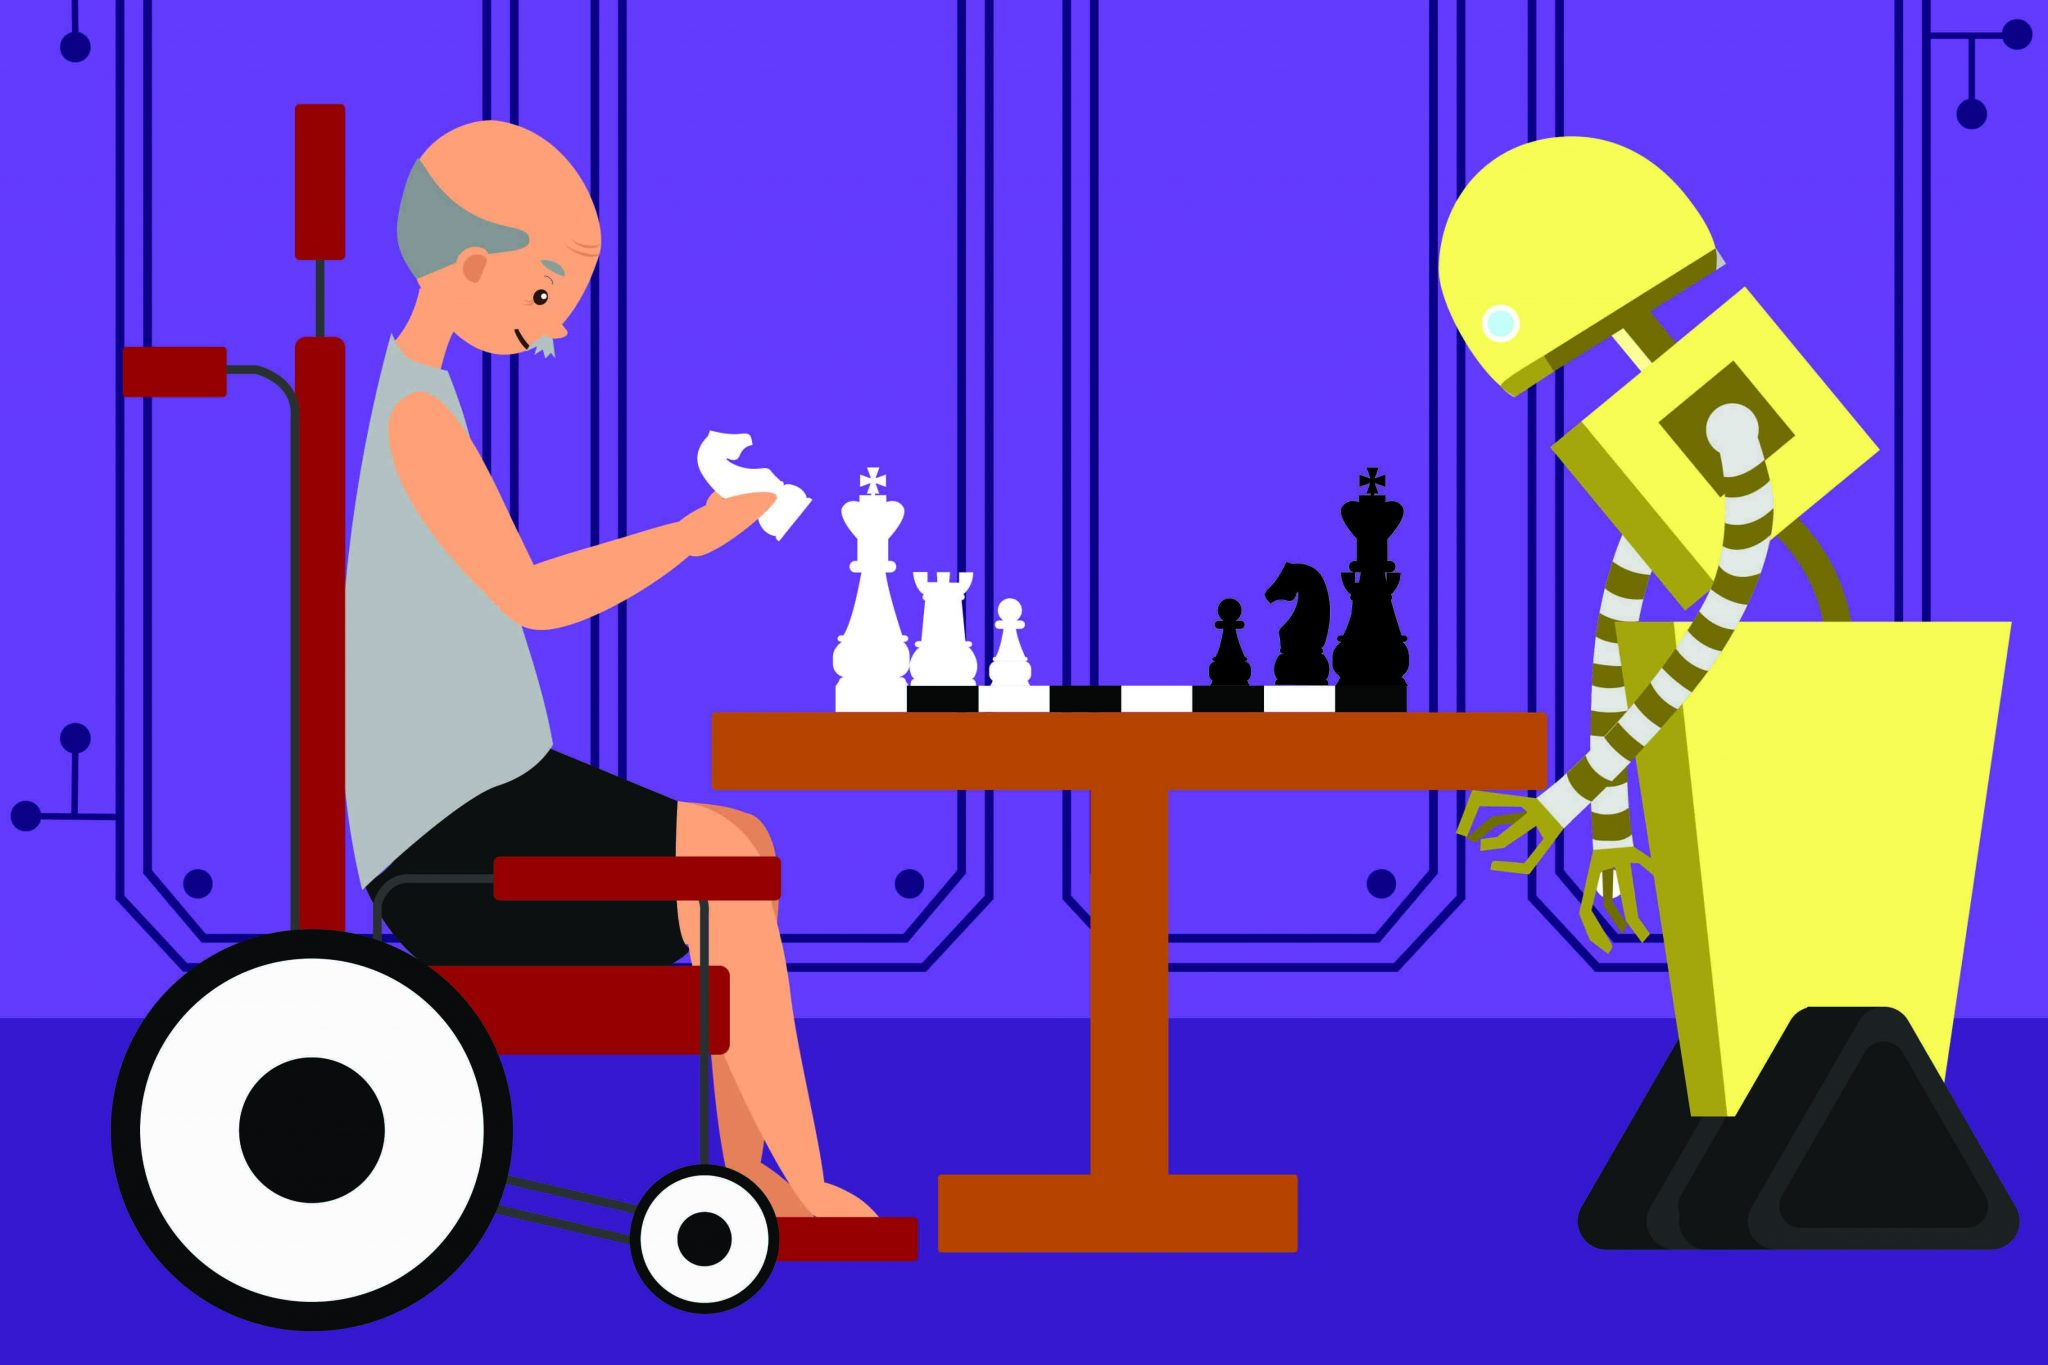 Robot playing chess with elderly man in wheelchair